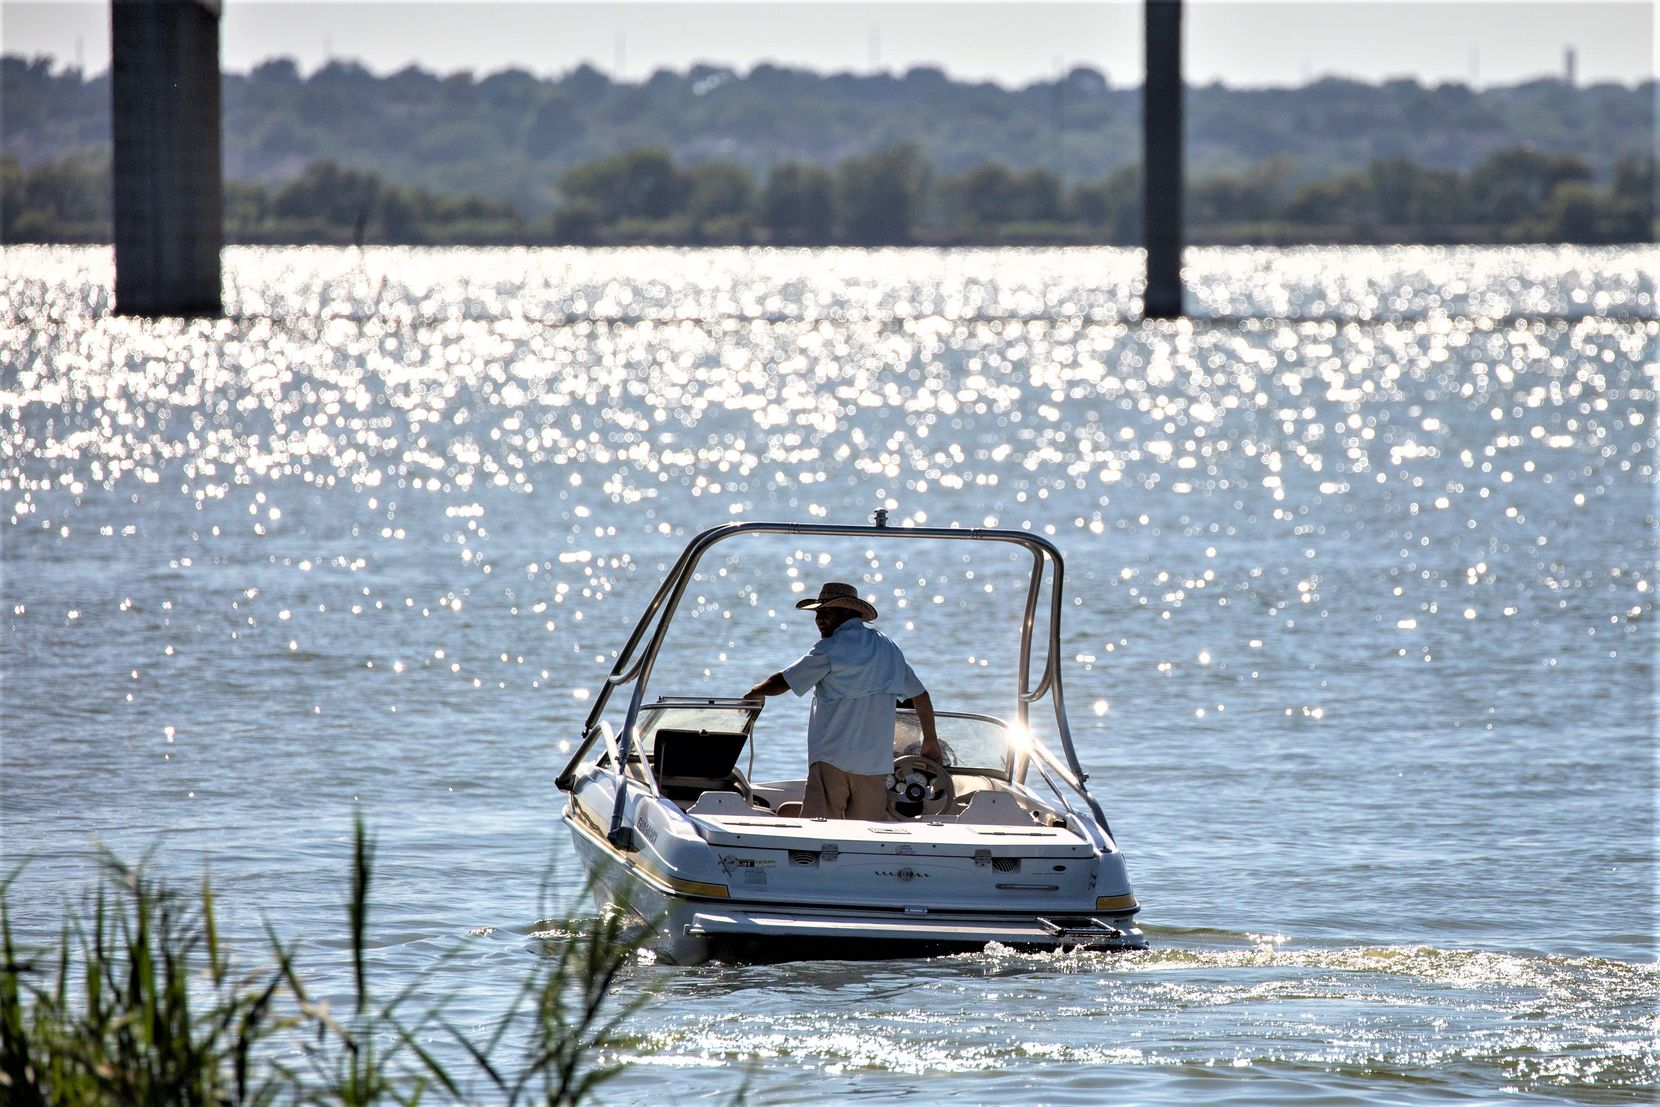 The U.S. Army Corps of Engineers oversees Lake Ray Roberts (where a boater is shown last July) and others in the area like lakes Lavon and Benbrook. They corps allows swimming in them, except in areas considered dangerous.